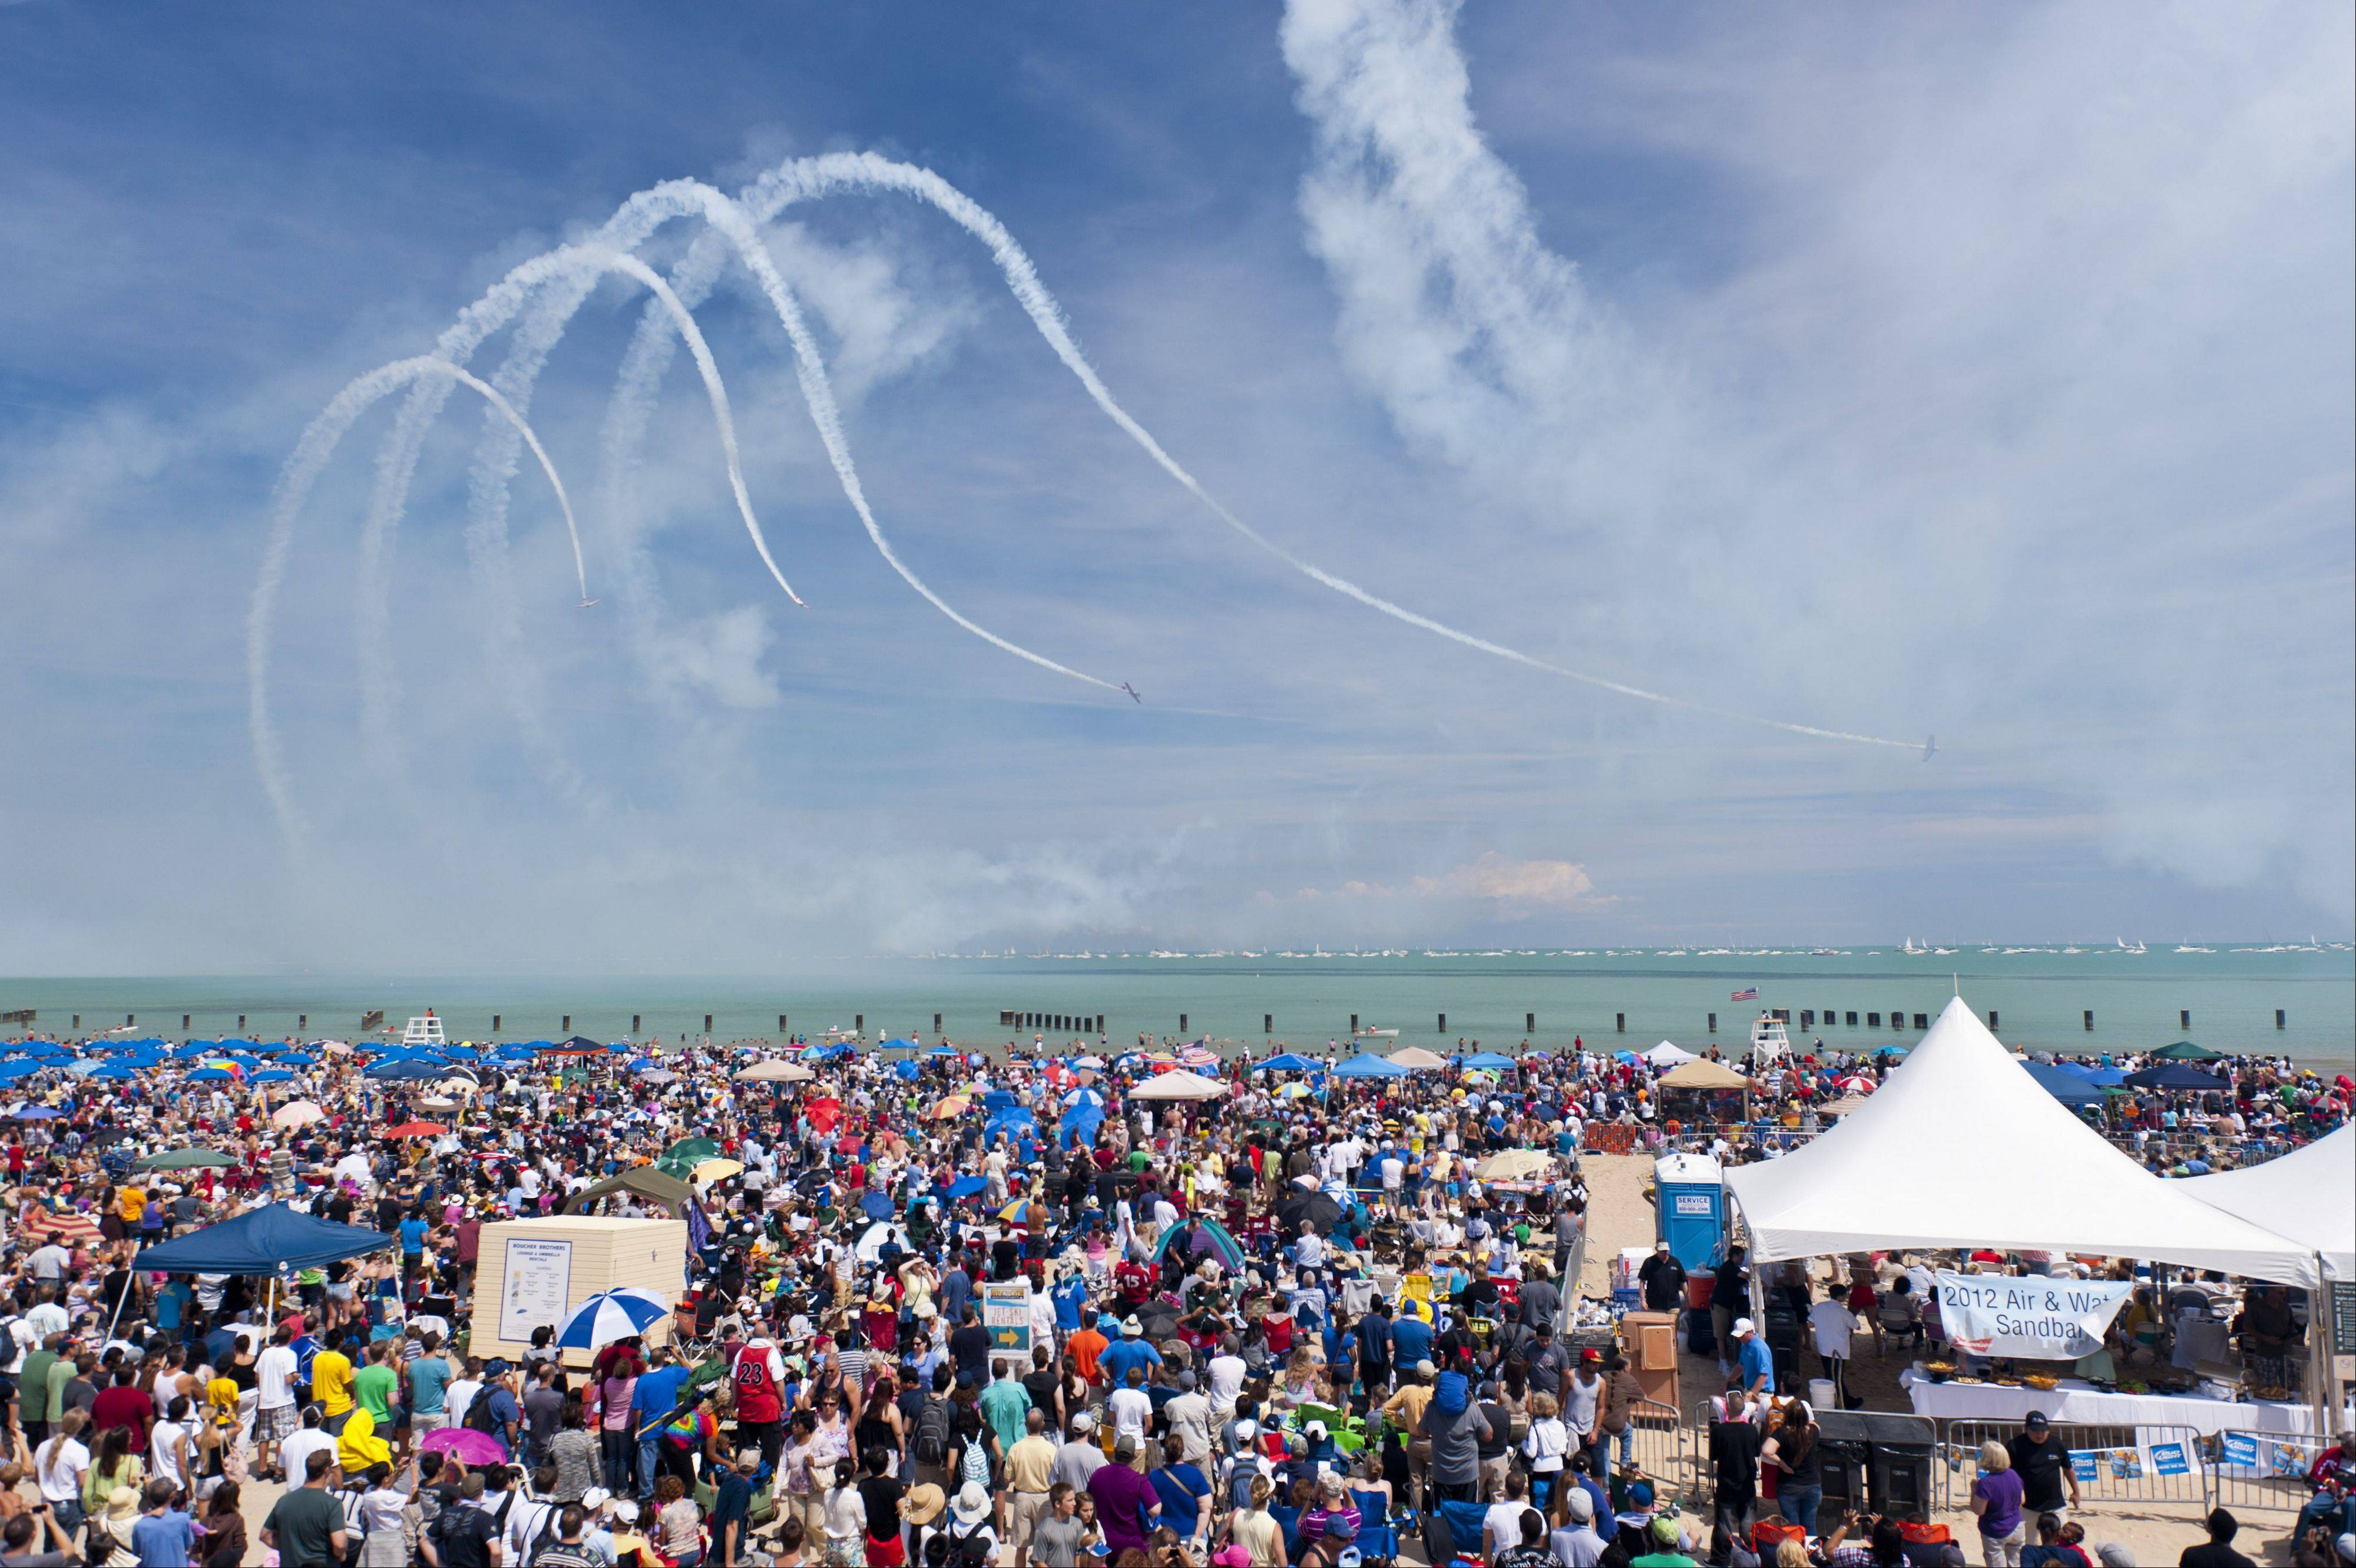 Crowds on North Avenue Beach watch the formations of the AeroShell Aerobatic Team. The team is one of 14 civilian acts performing at this year's Chicago Air and Water Show.